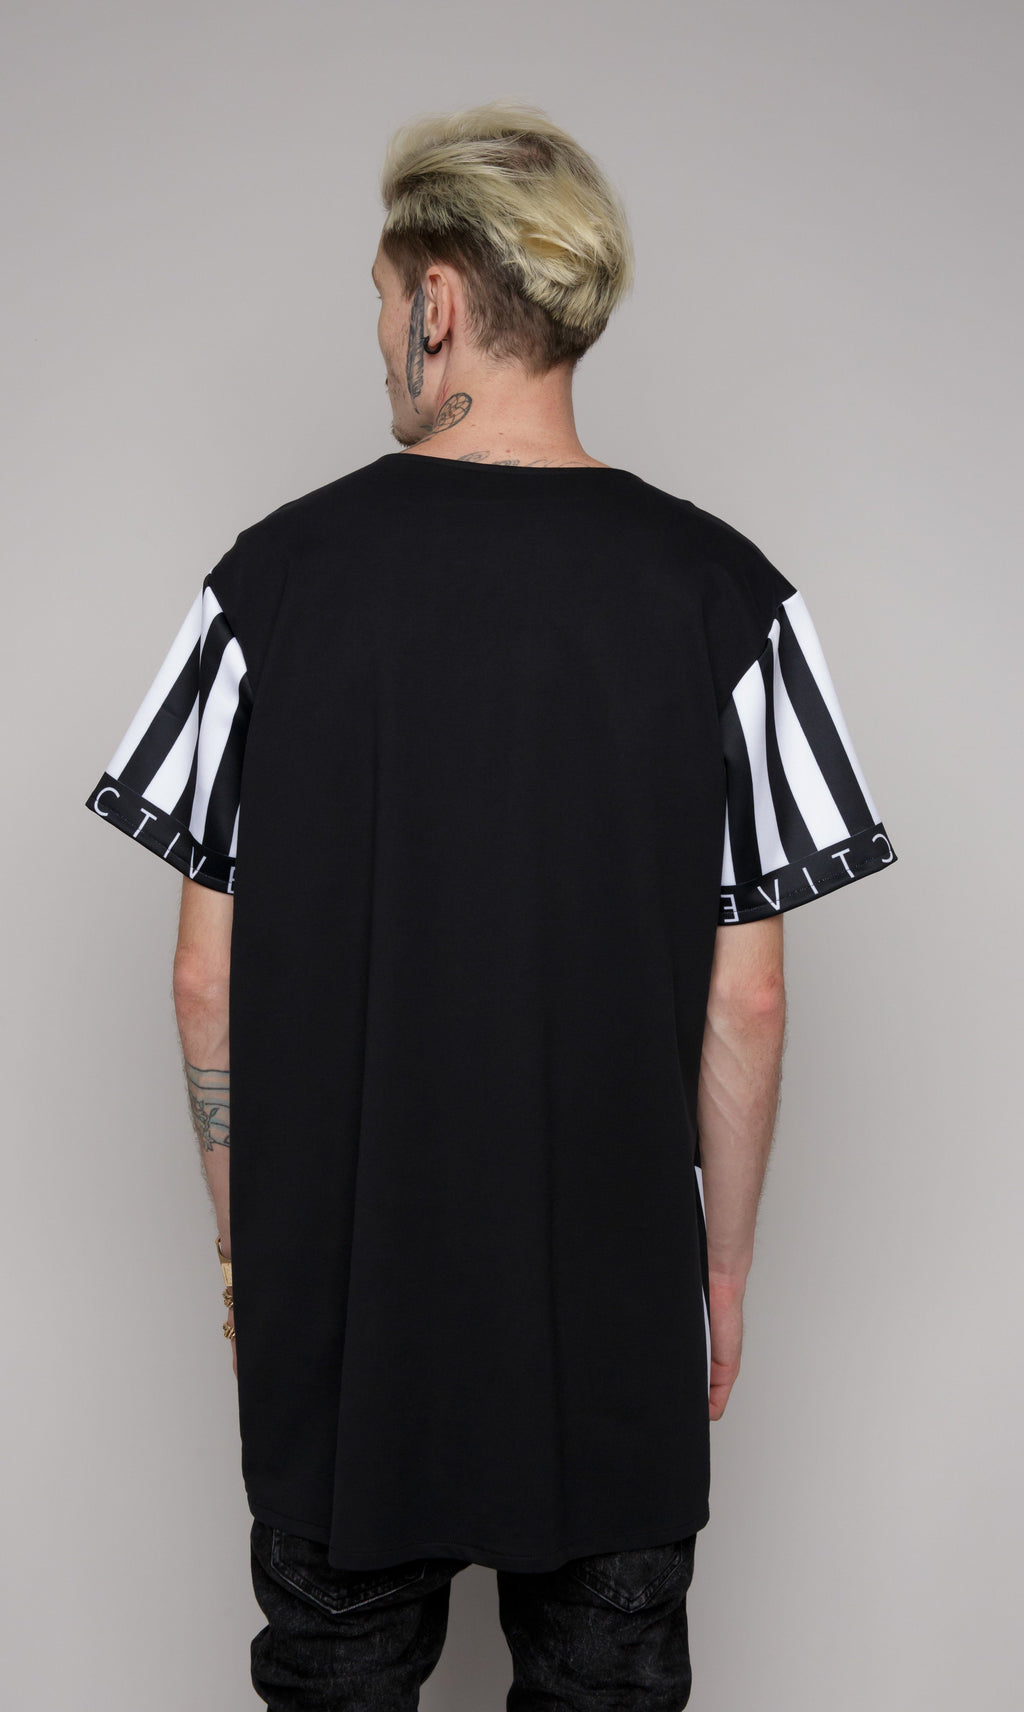 t-shirt with black and white lines